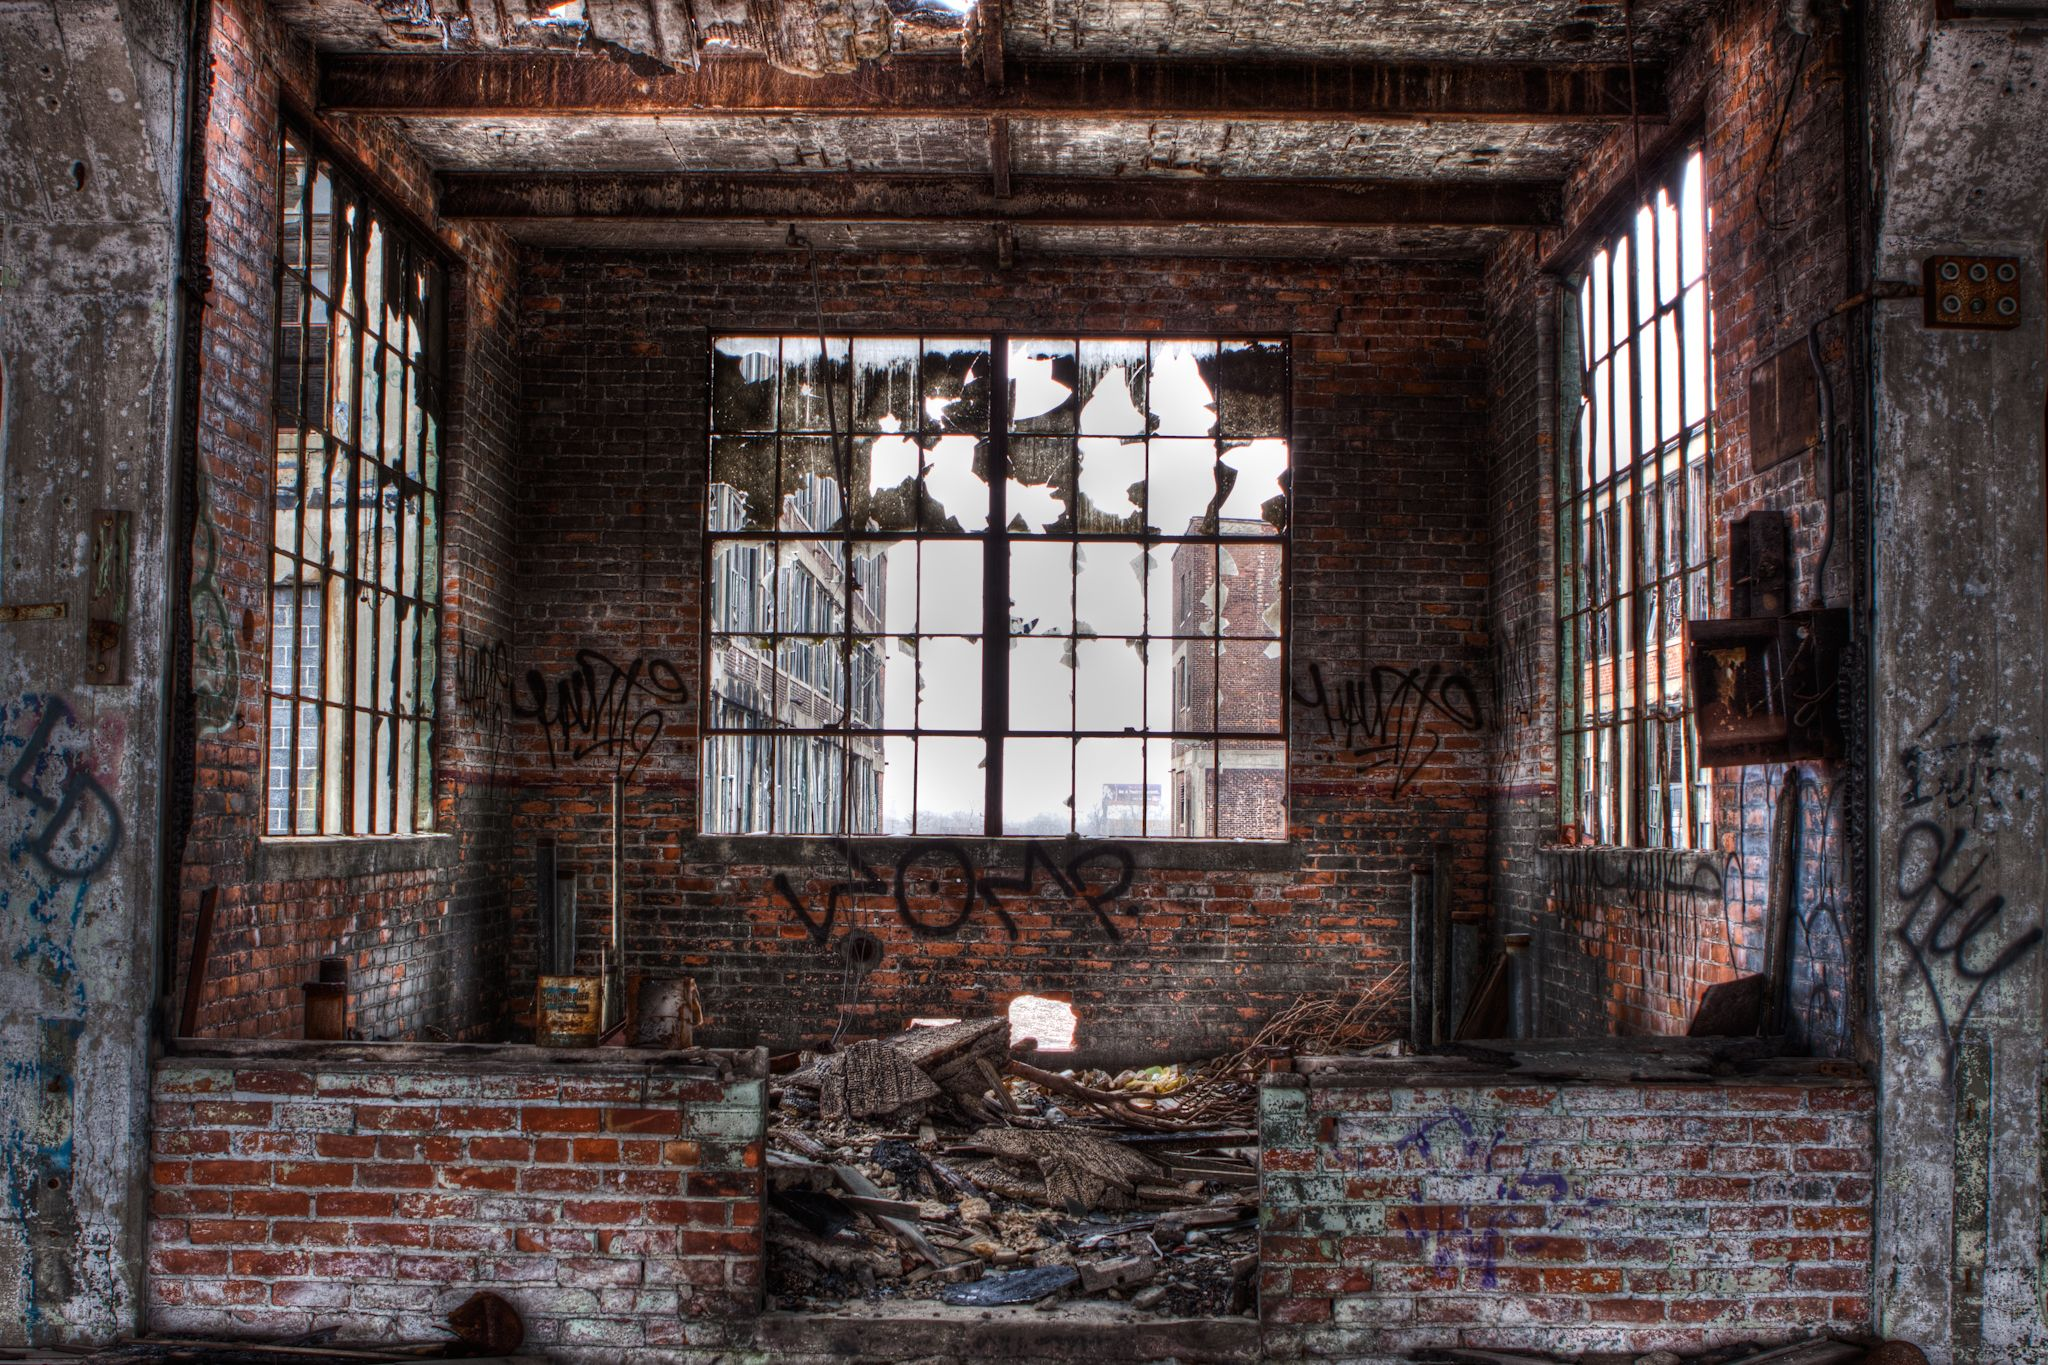 detroit station windows - Google Search